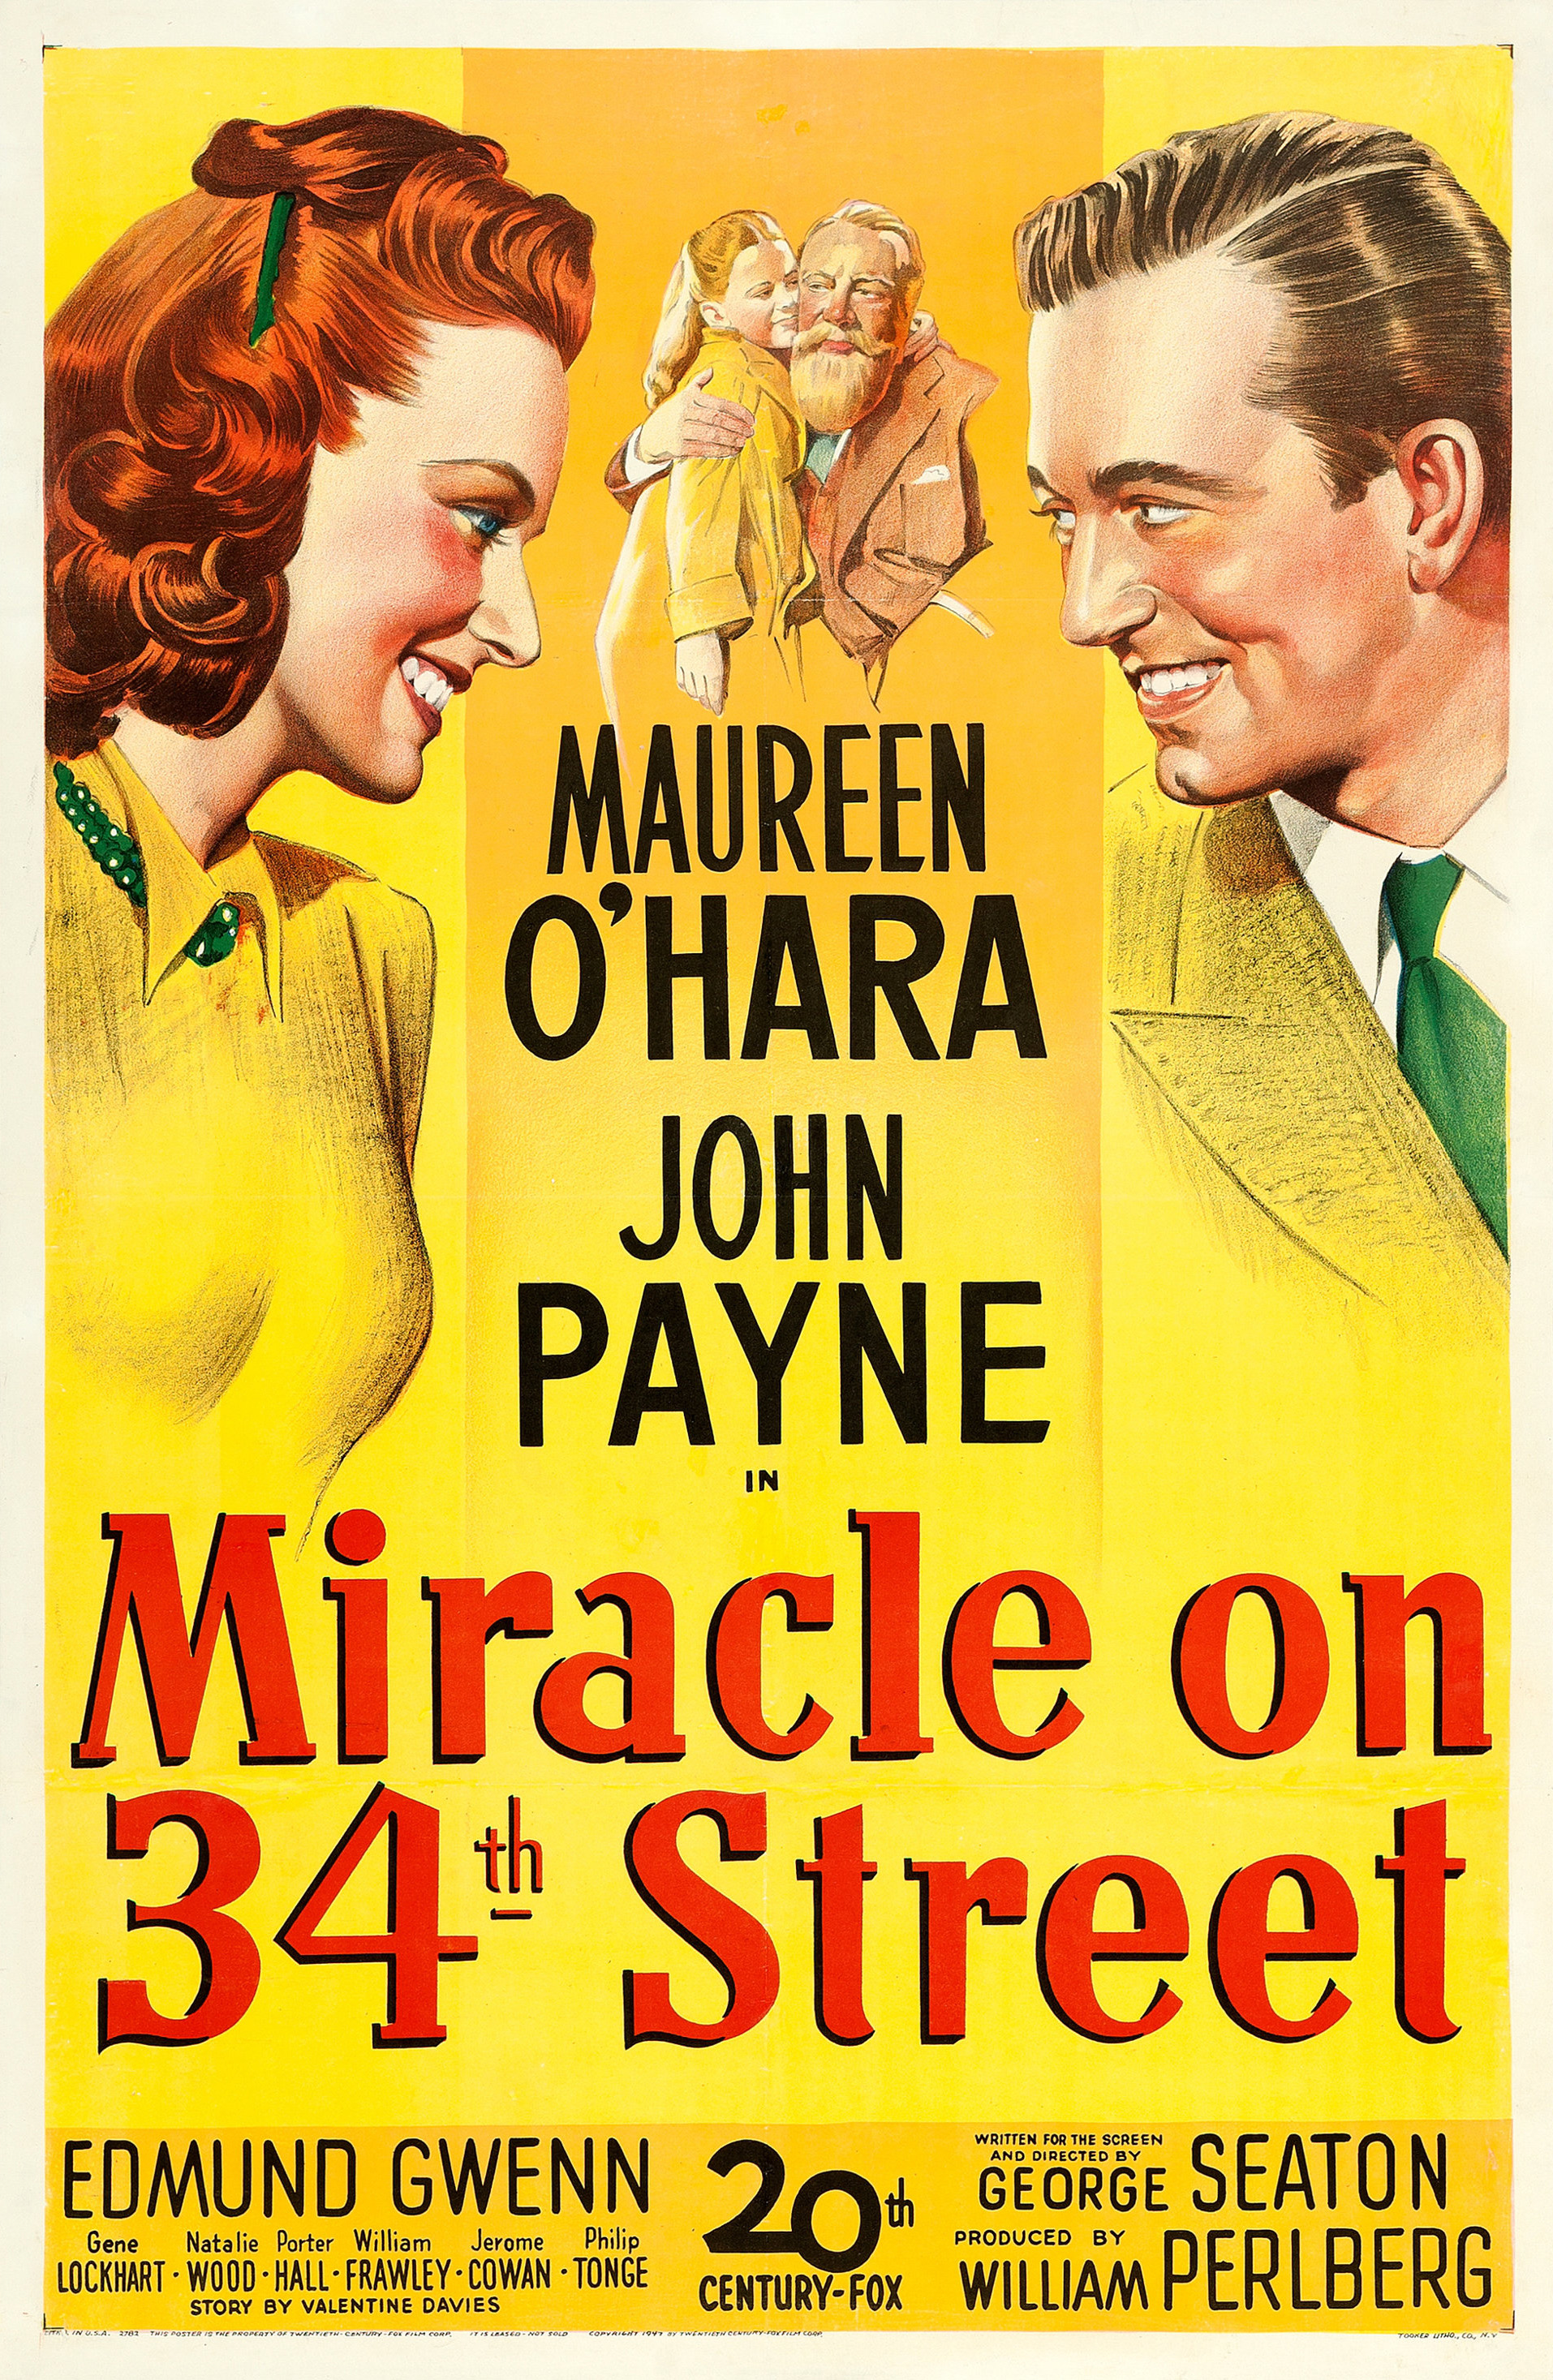 Miracle on 34th Street - Wikipedia